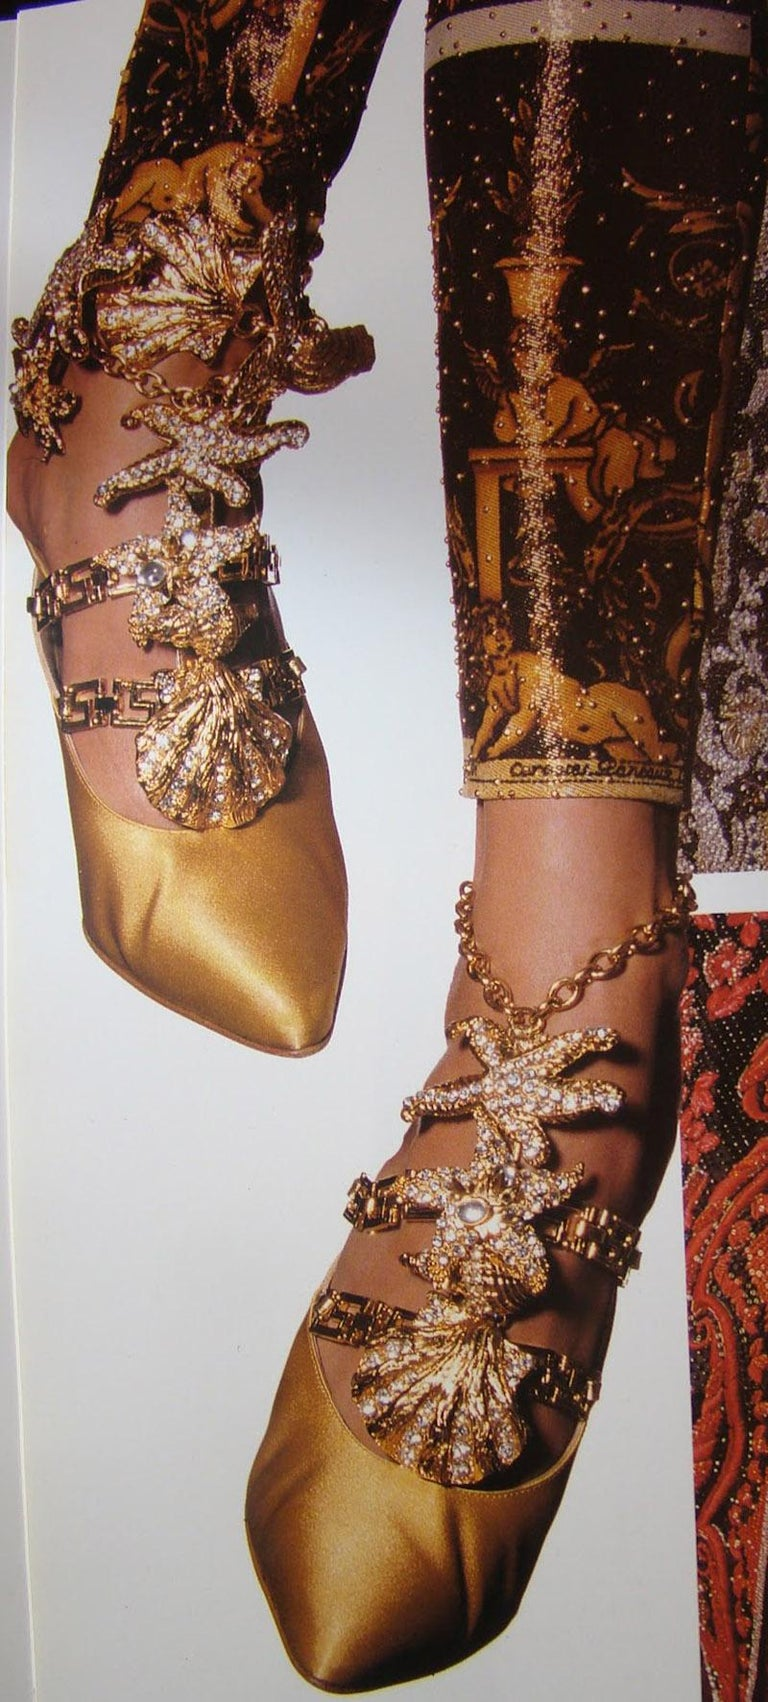 Iconic Vintage 1992 Gianni Versace Embellished Shoes  In New Condition For Sale In Montgomery, TX